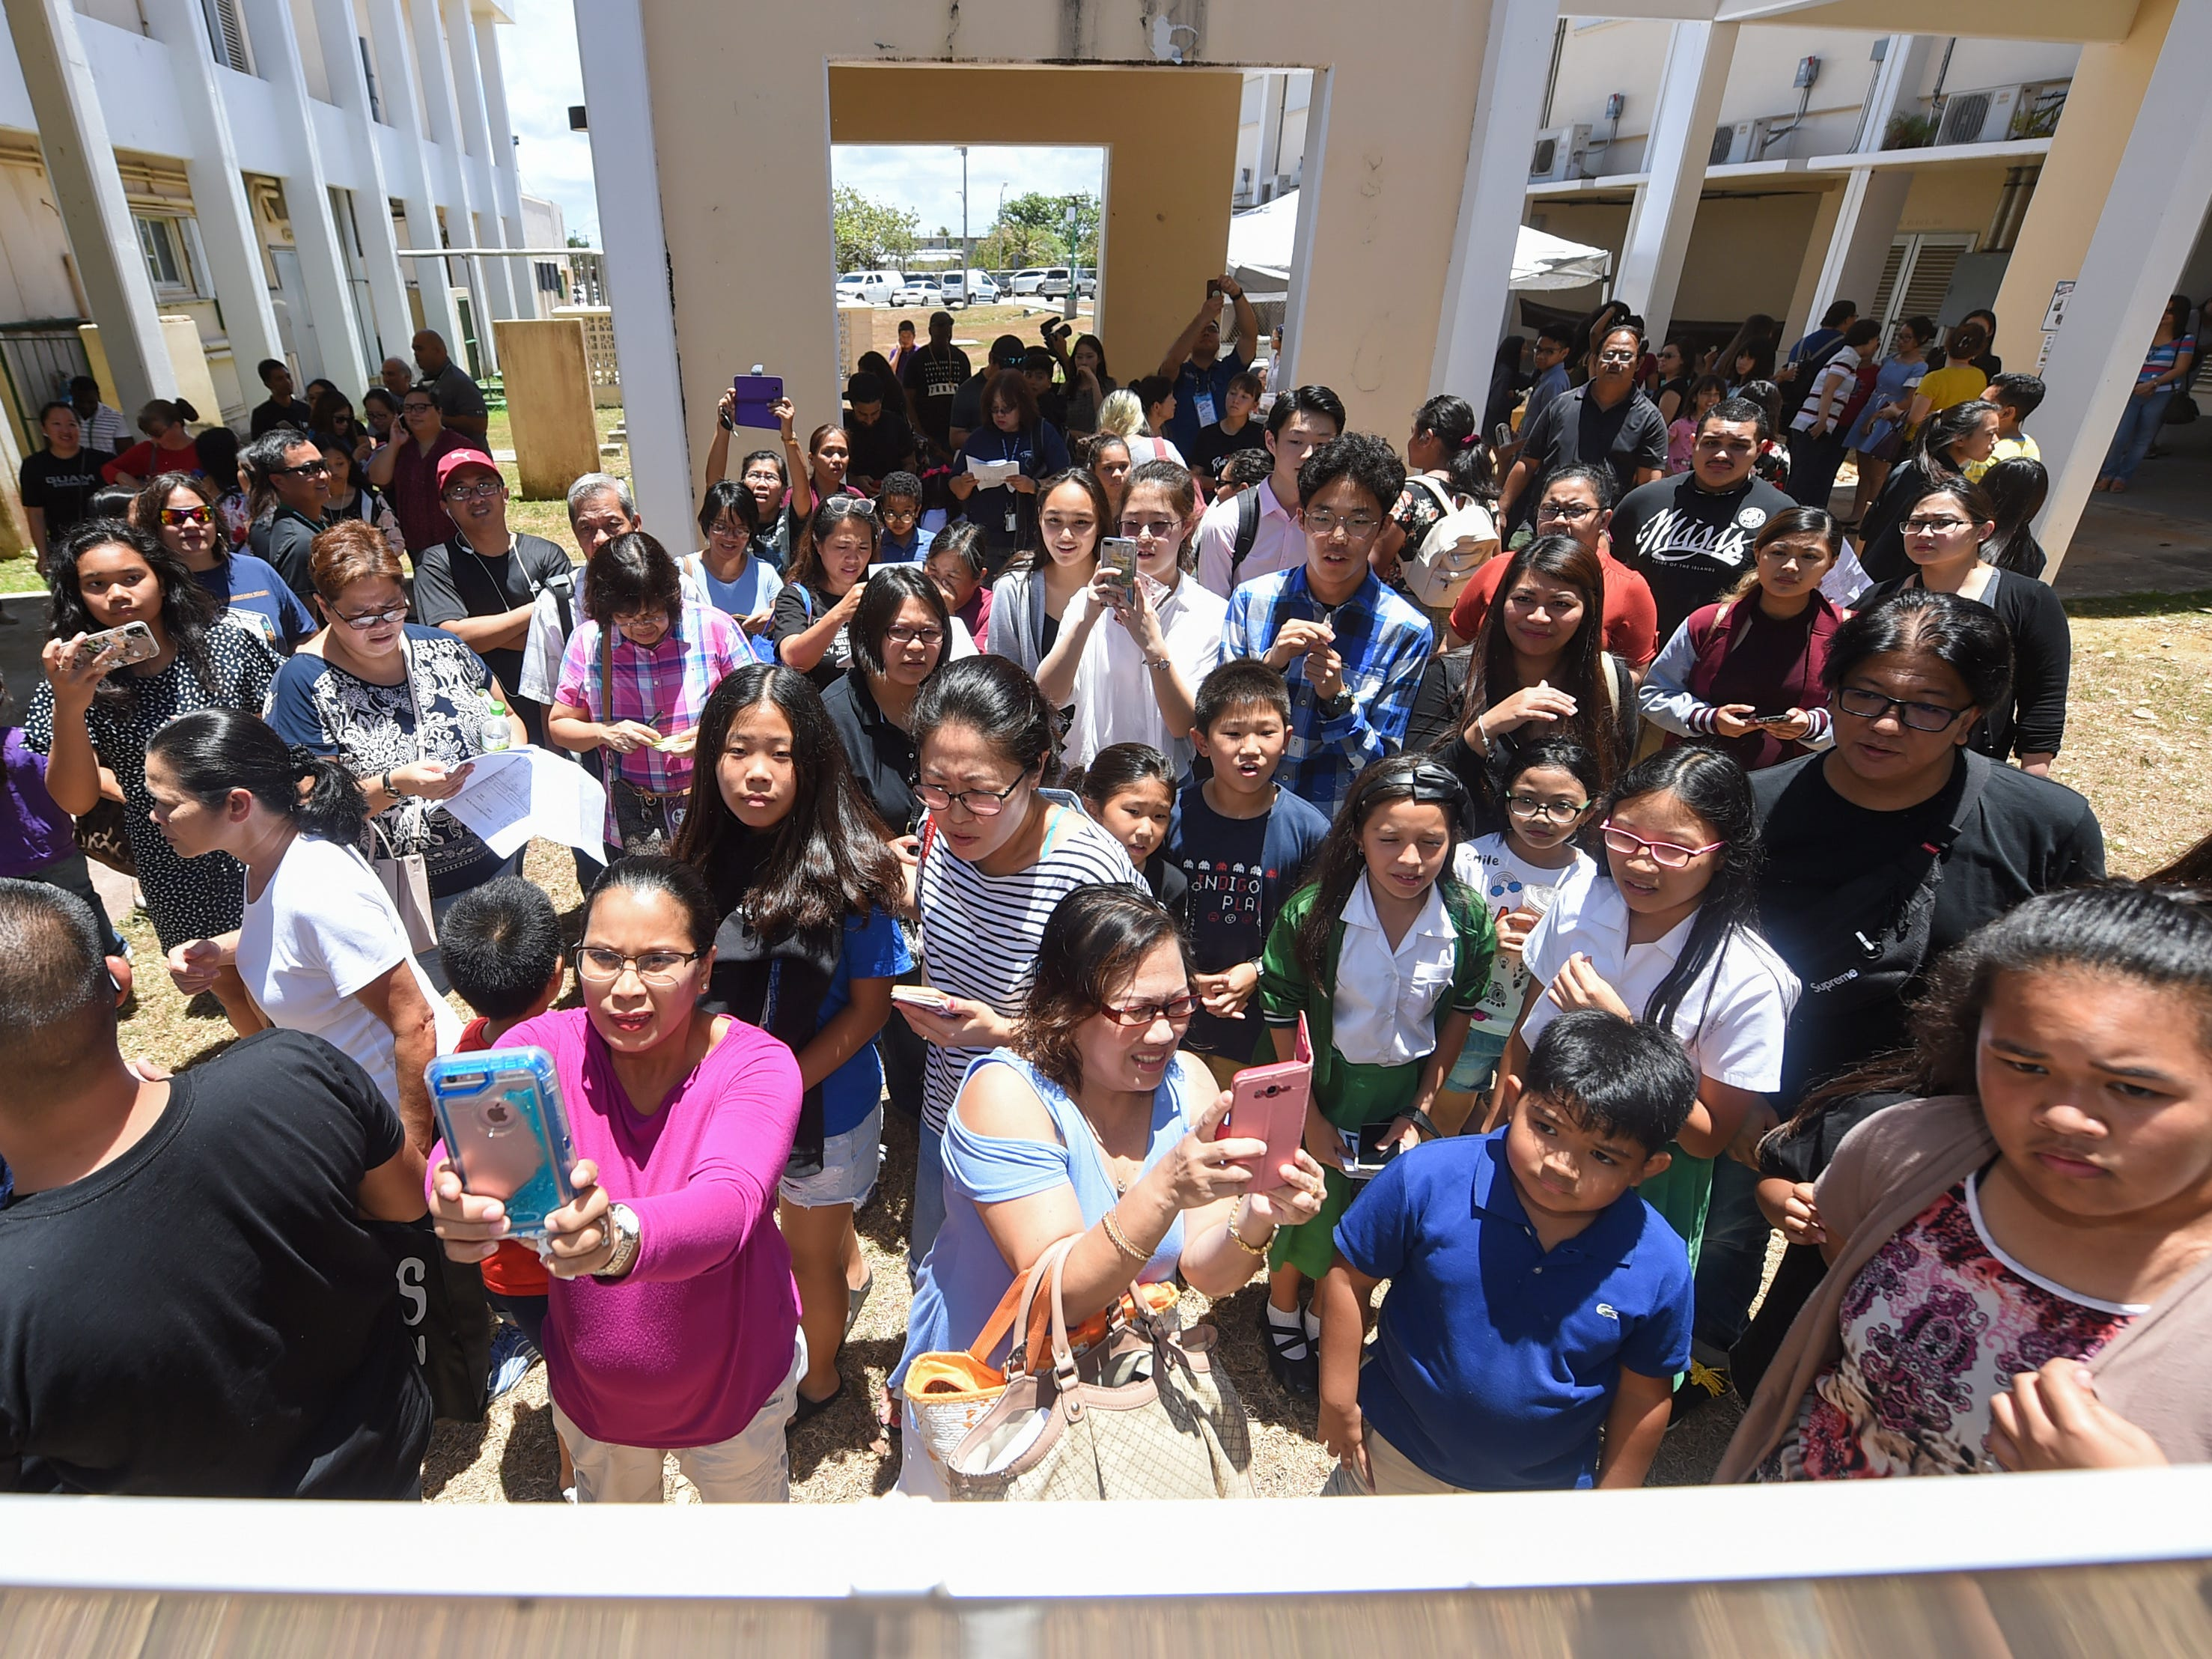 Families and science fair participants gather around a marker board to view results for the 41st Annual Islandwide Science Fair at the University of Guam in Mangilao, May 11, 2019.